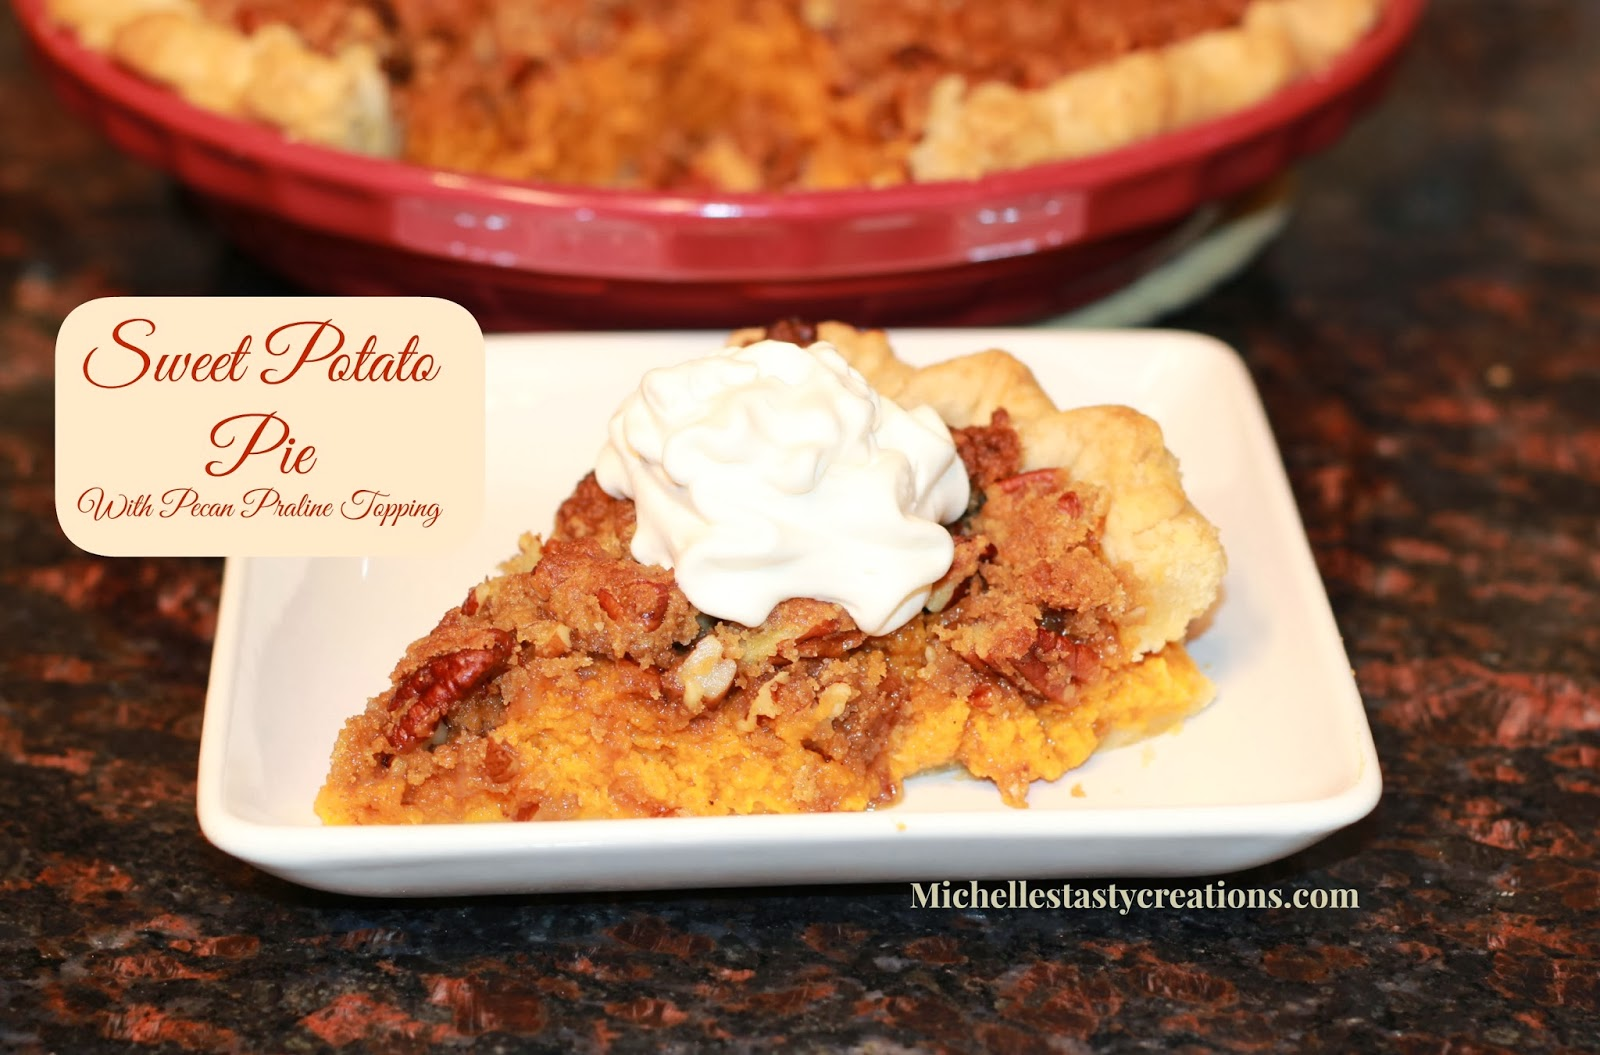 ... Tasty Creations: Sweet Potato Pie with Pecan Praline Topping